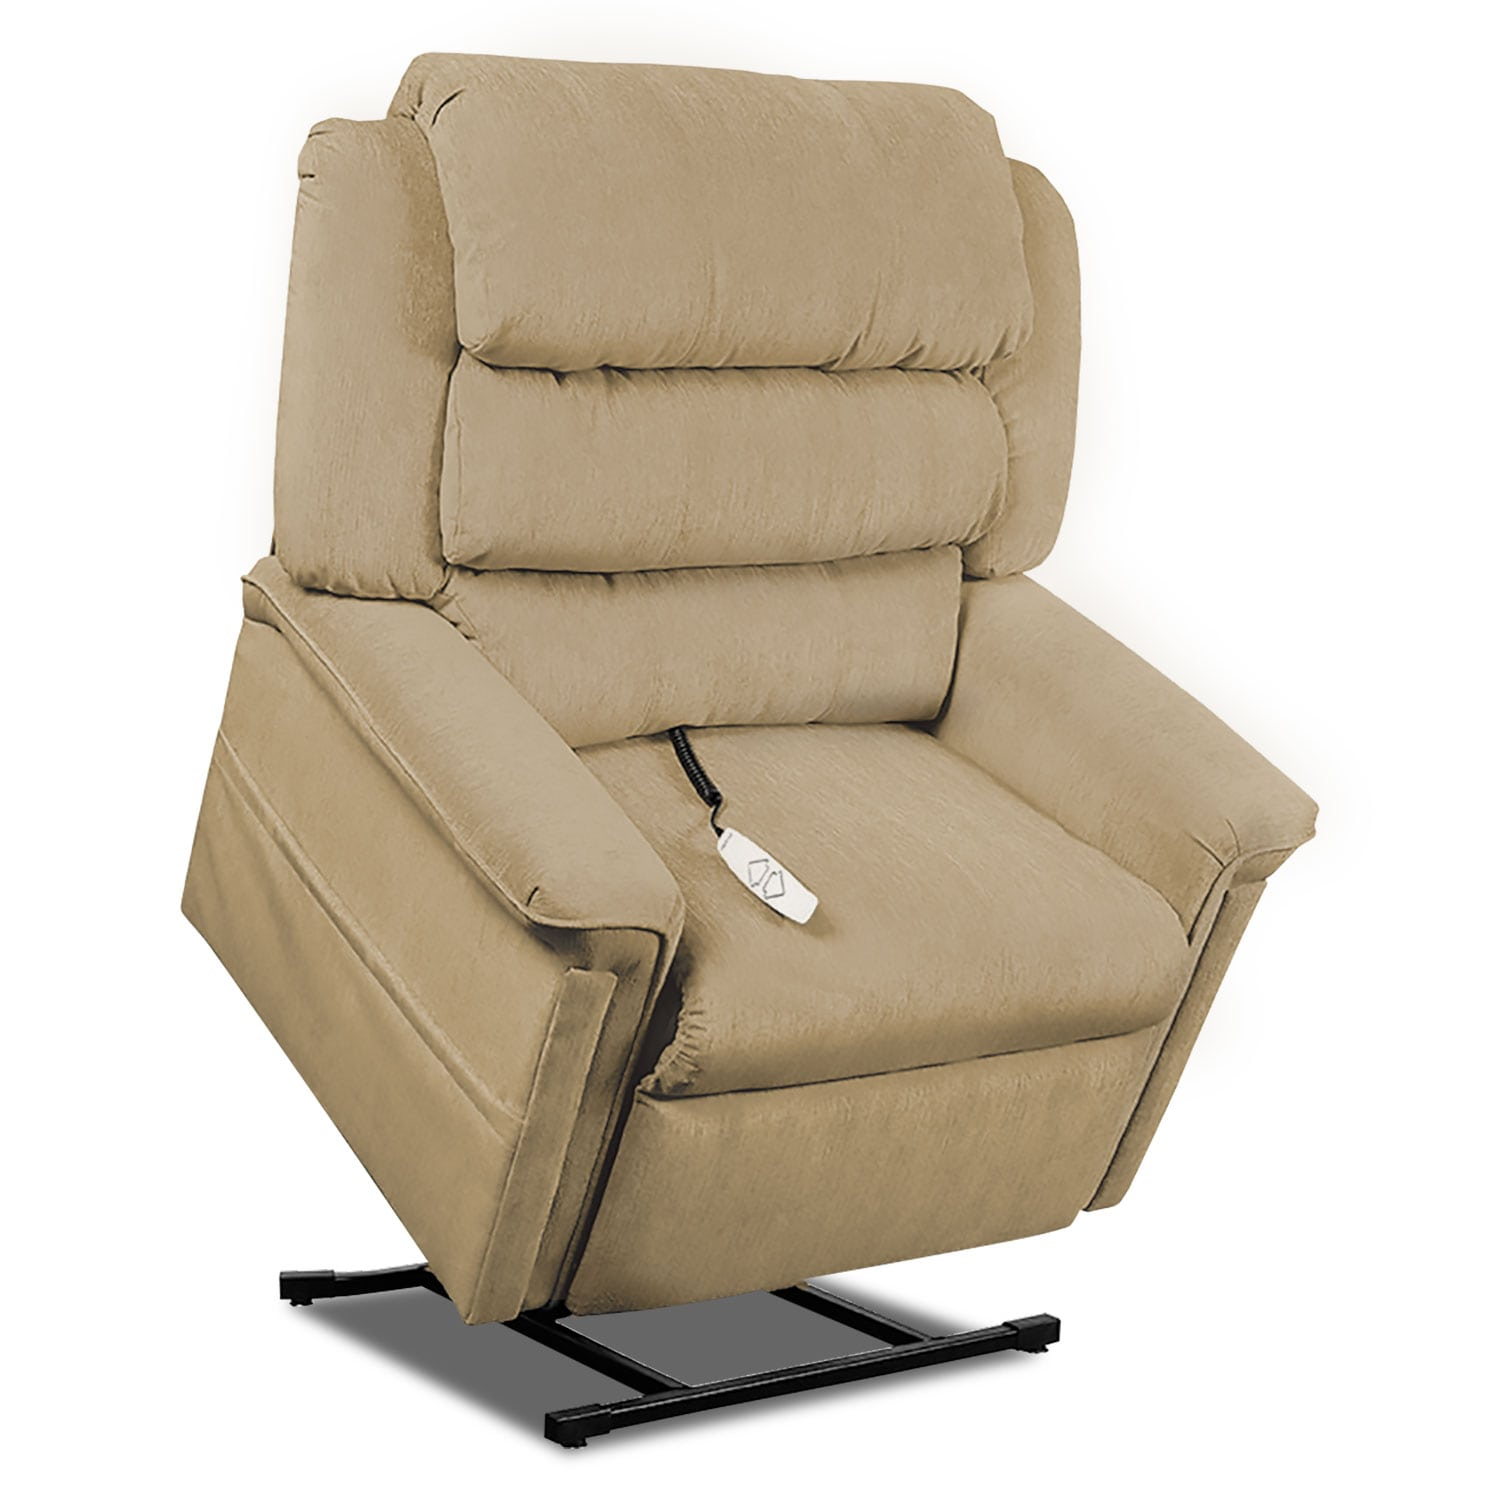 [Sally Lift Chair - Camel]